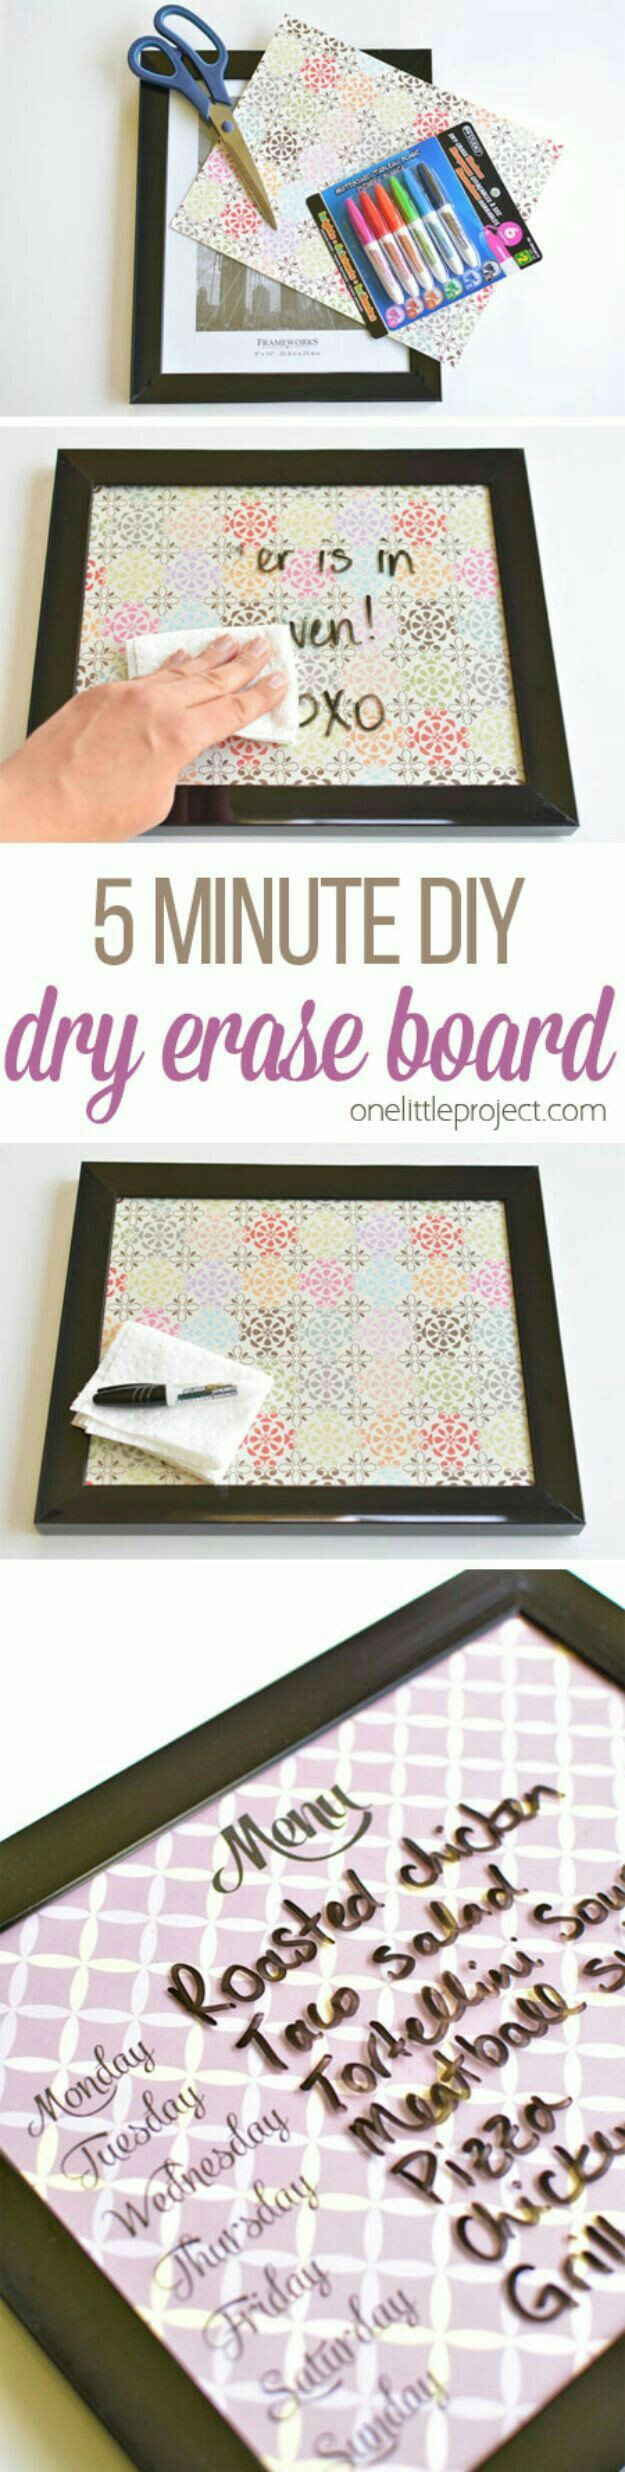 Pin by Sydney Dacus on DIY and stuff like that   Pinterest   Craft ...